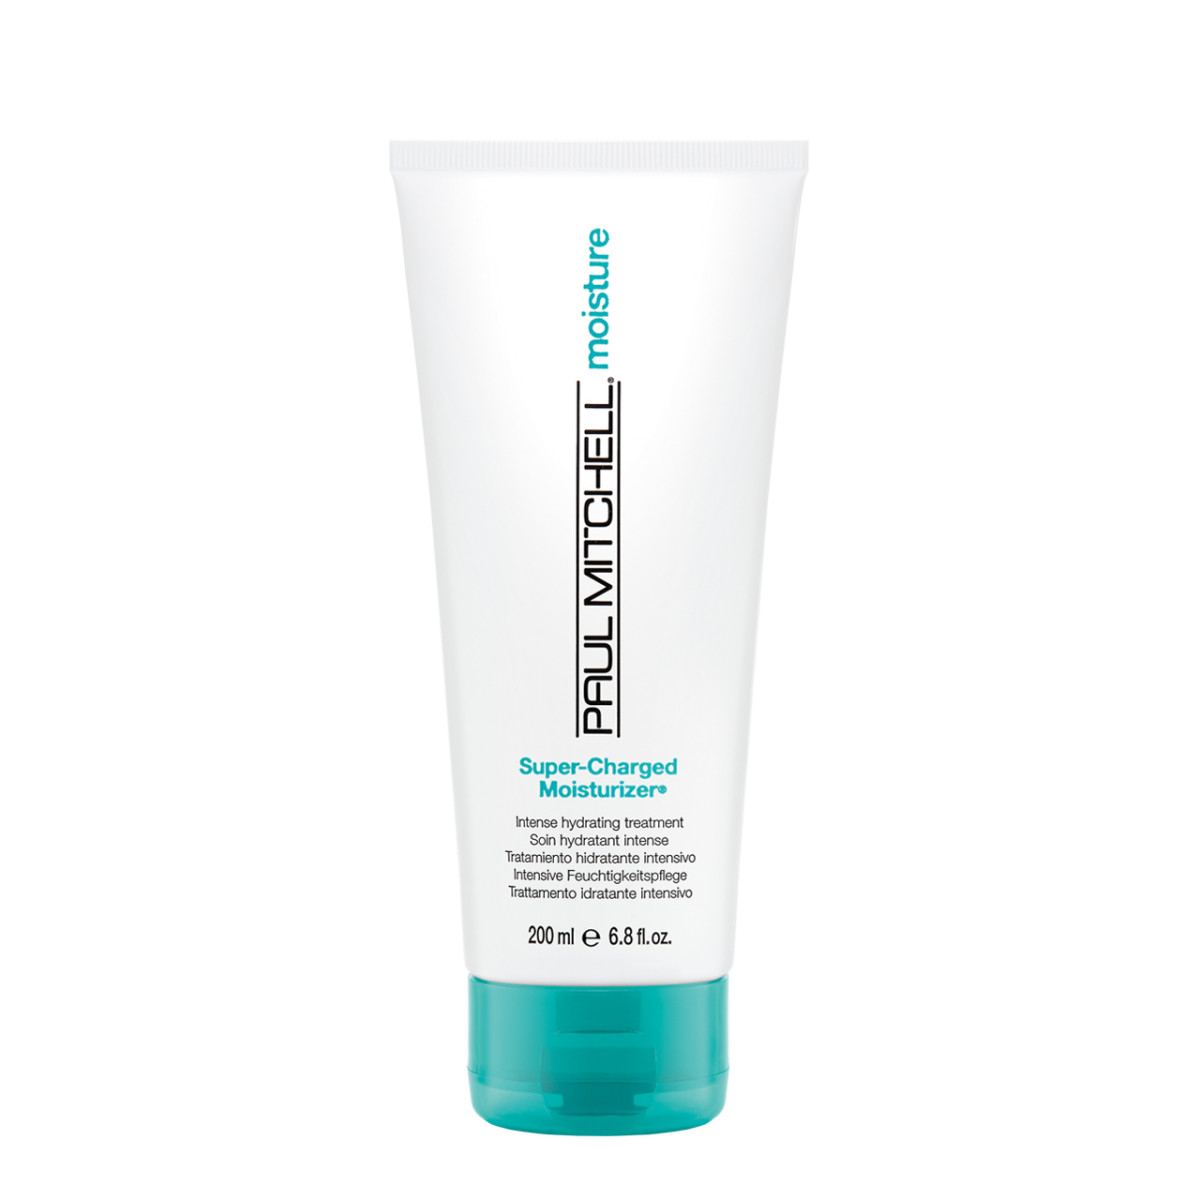 Paul Mitchell Super Charged Moisturizer - 6.8oz  18$